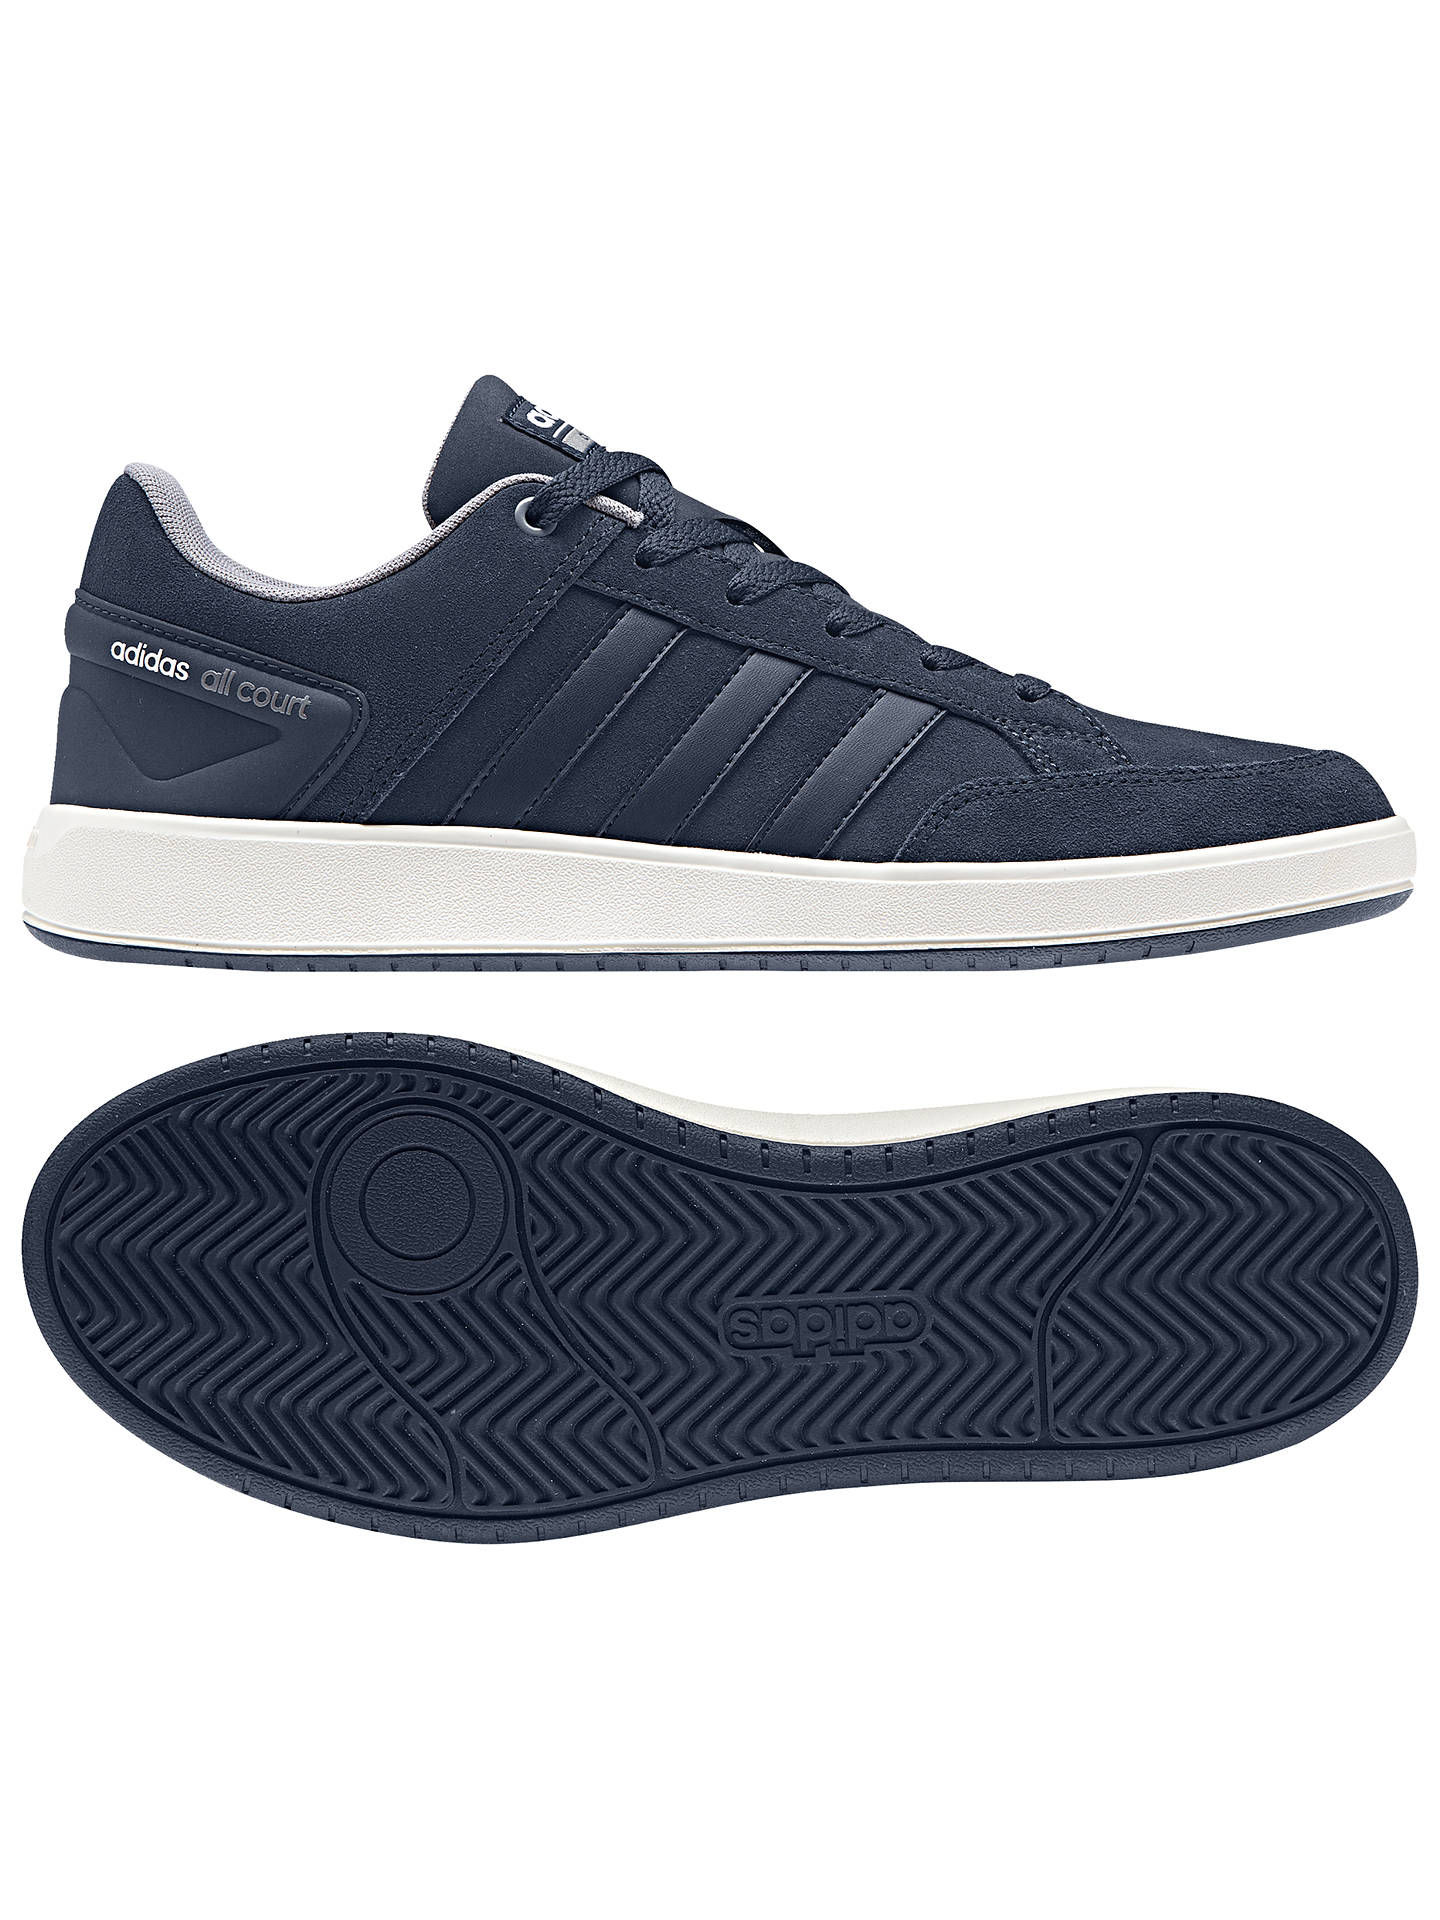 preschool adidas Cloudfoam adidas Cloudfoam All Court Men's Trainers at John Lewis & Partners